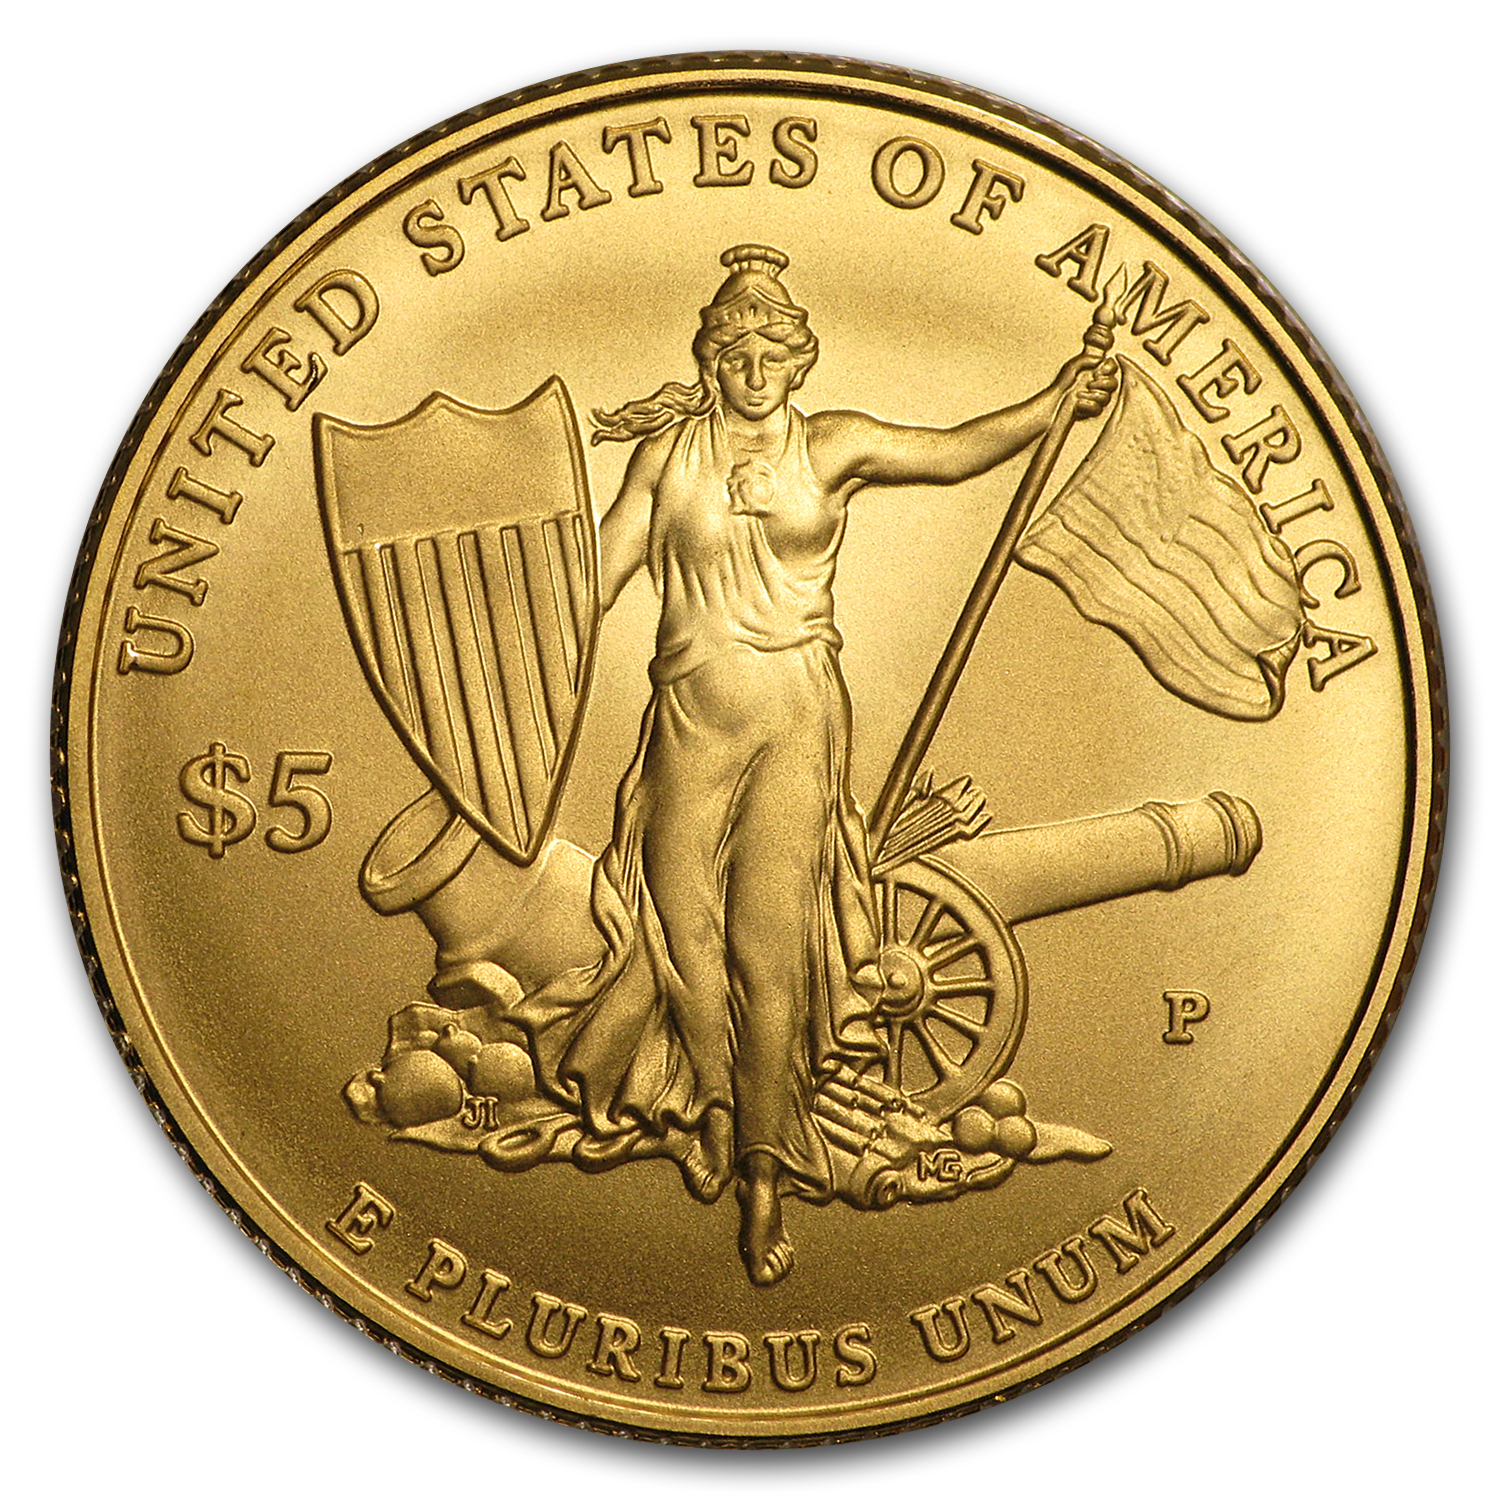 2011-P Gold $5 Commemorative Medal of Honor BU